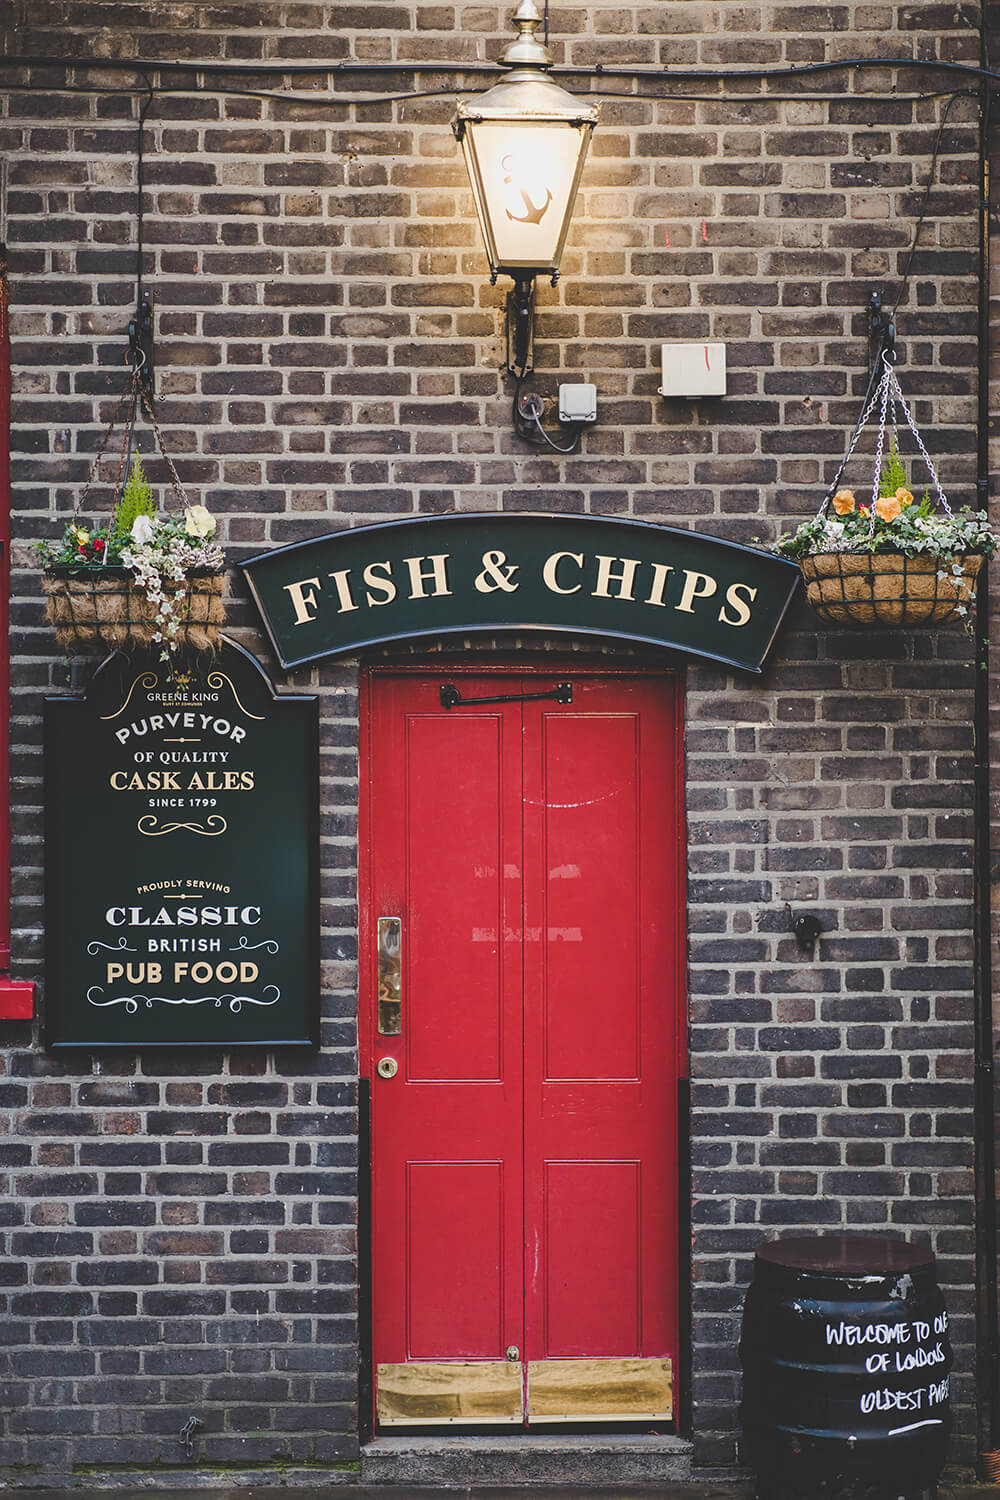 Fish and Chips fascia signage